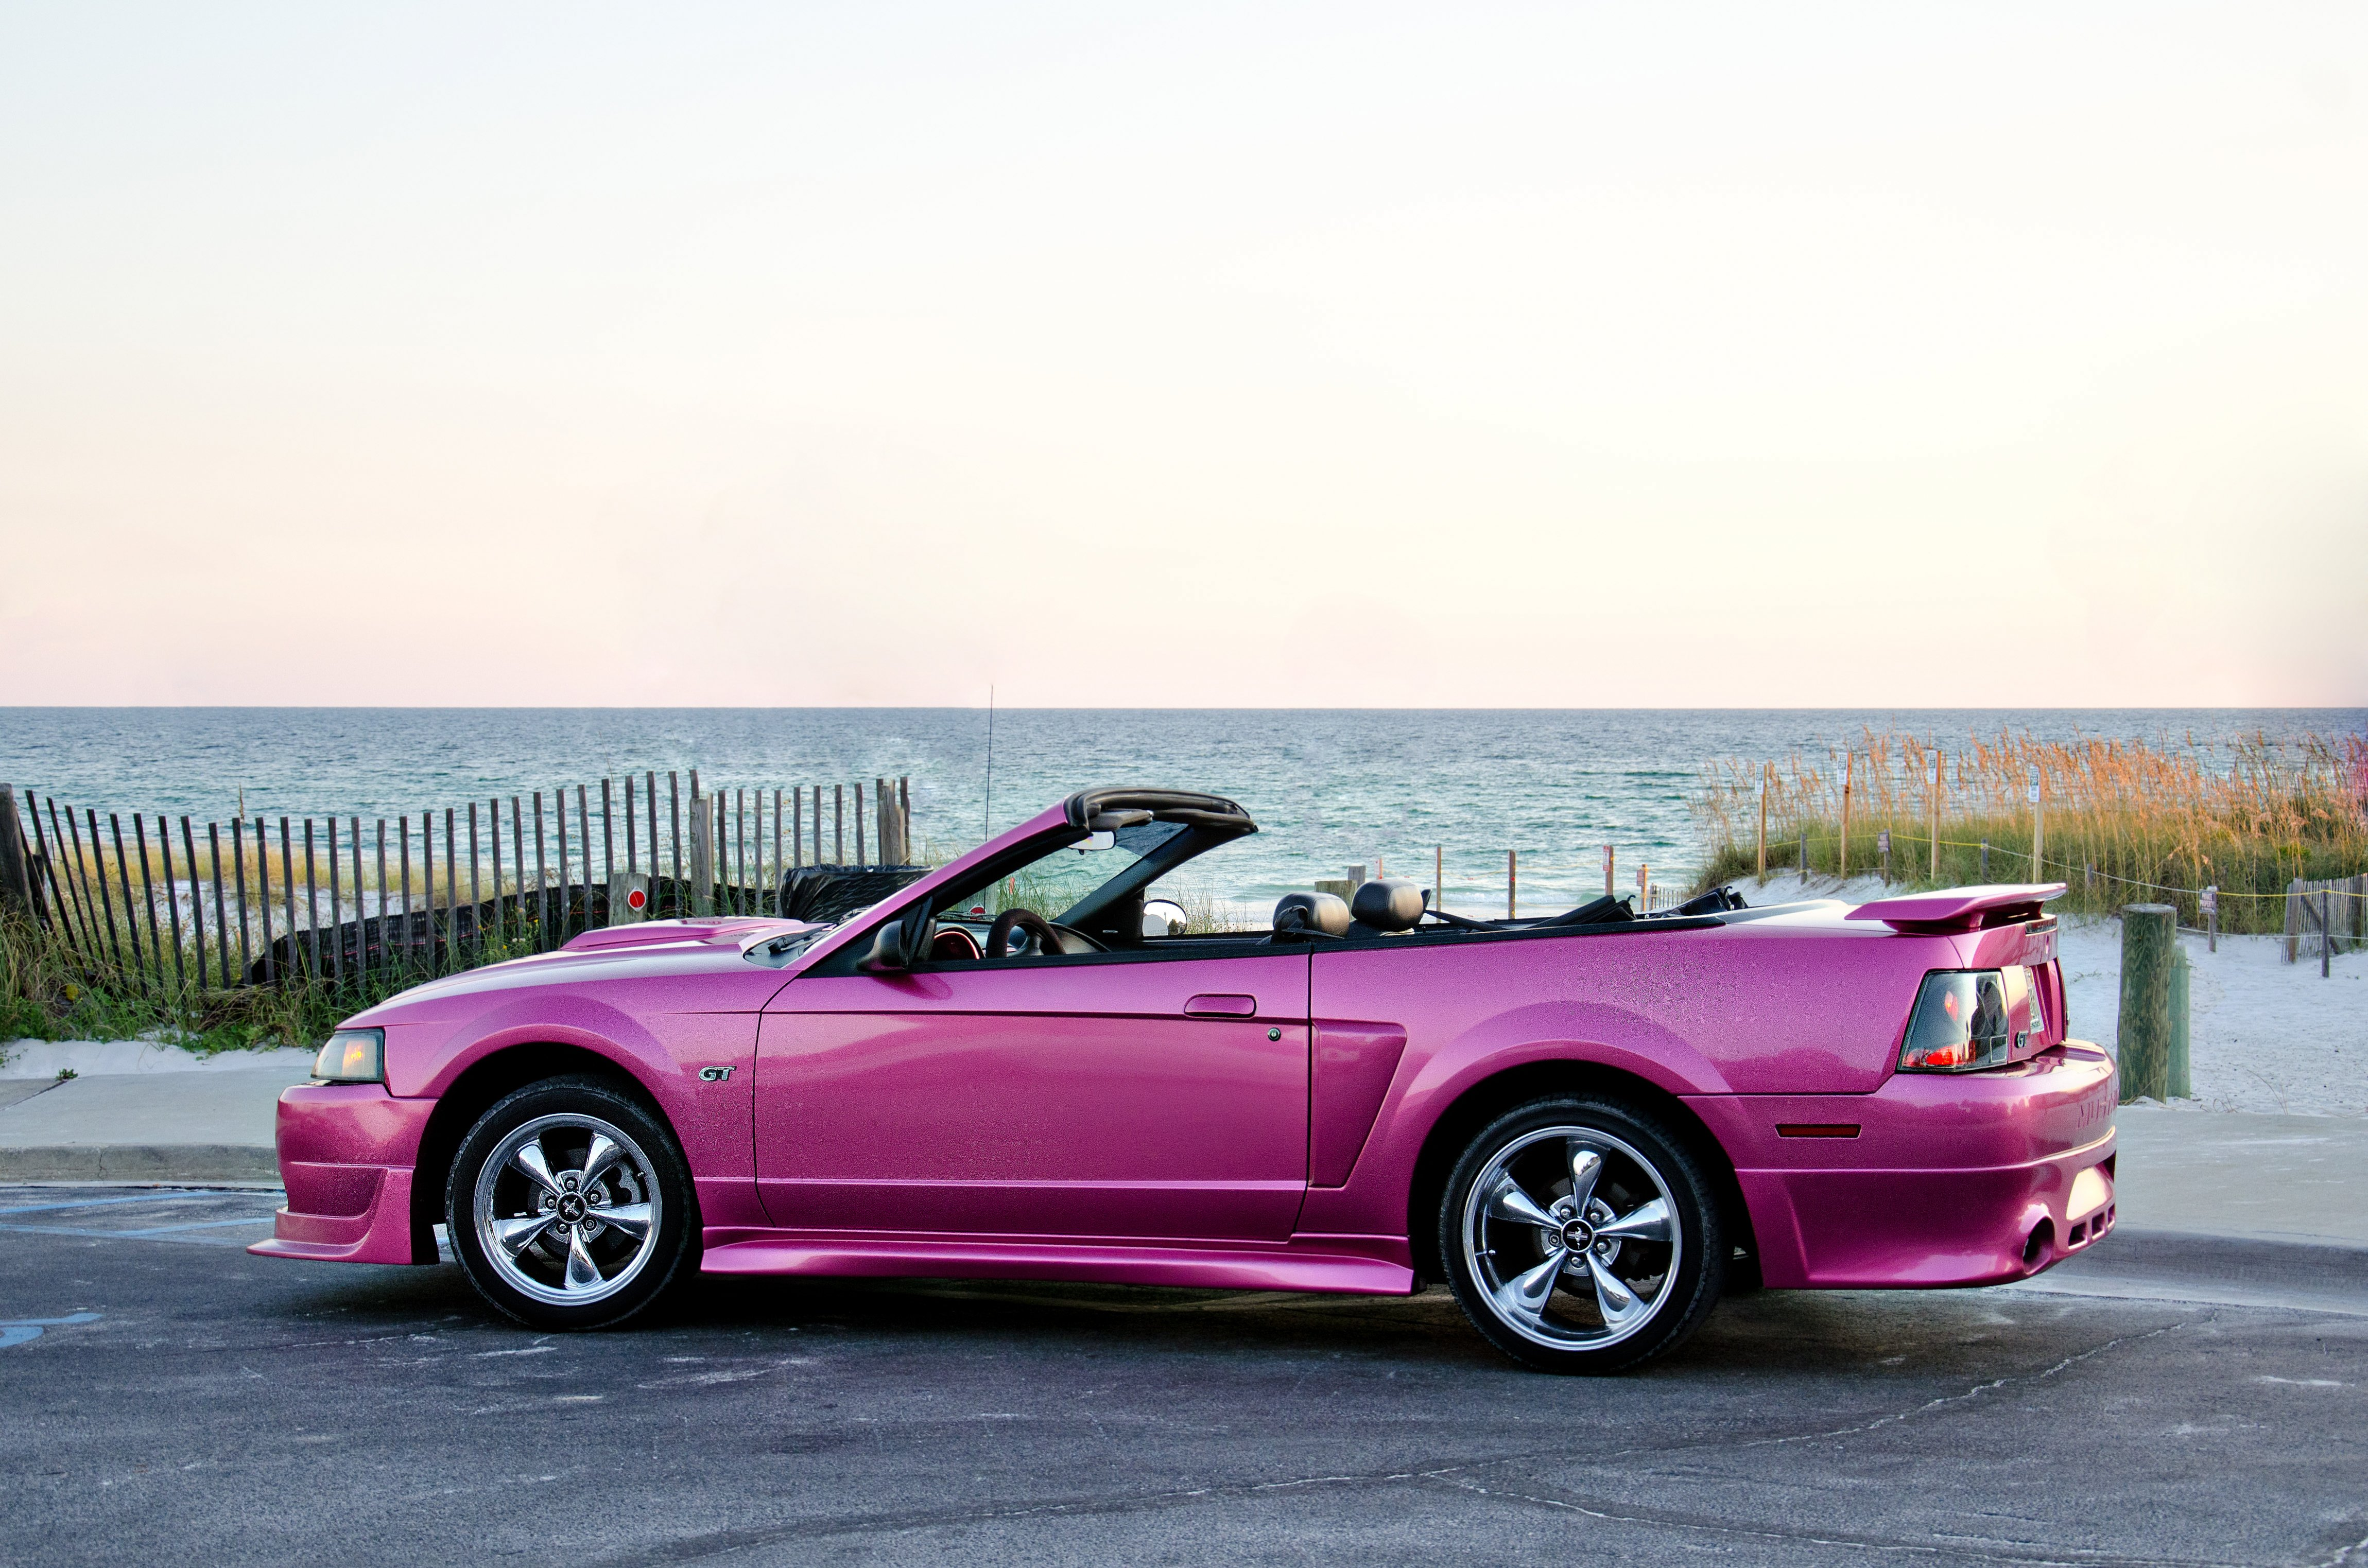 Click image for larger version  Name:MustangOnBeach.jpg Views:169 Size:1.94 MB ID:34689